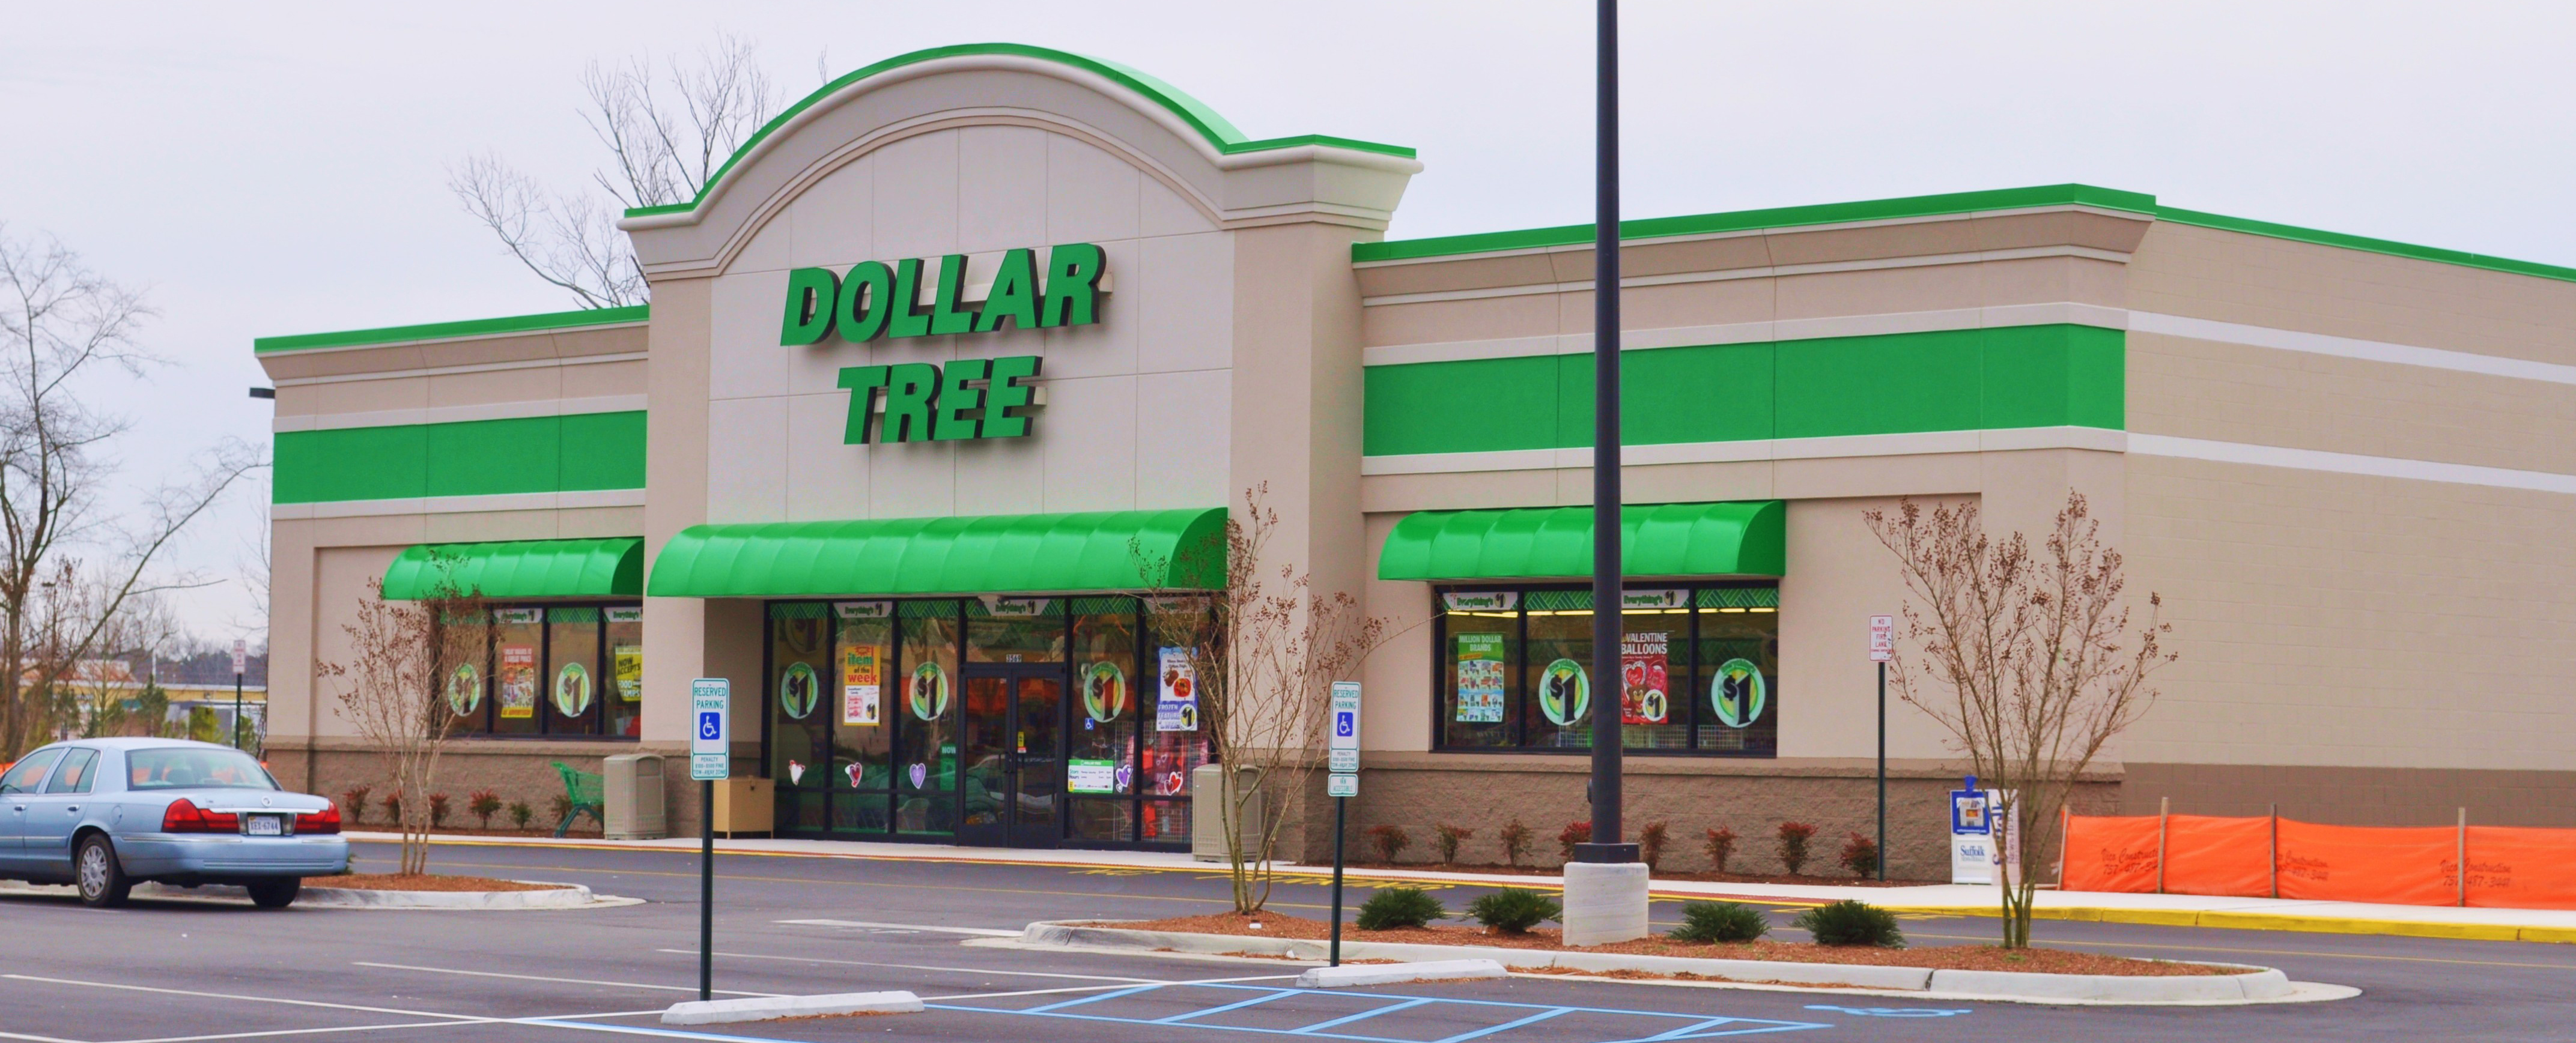 Same-store sales at Dollar General were up %, while Dollar Tree reported a more modest % growth because of weaker sales at its Family Dollar stores. We put the two stores to the test.